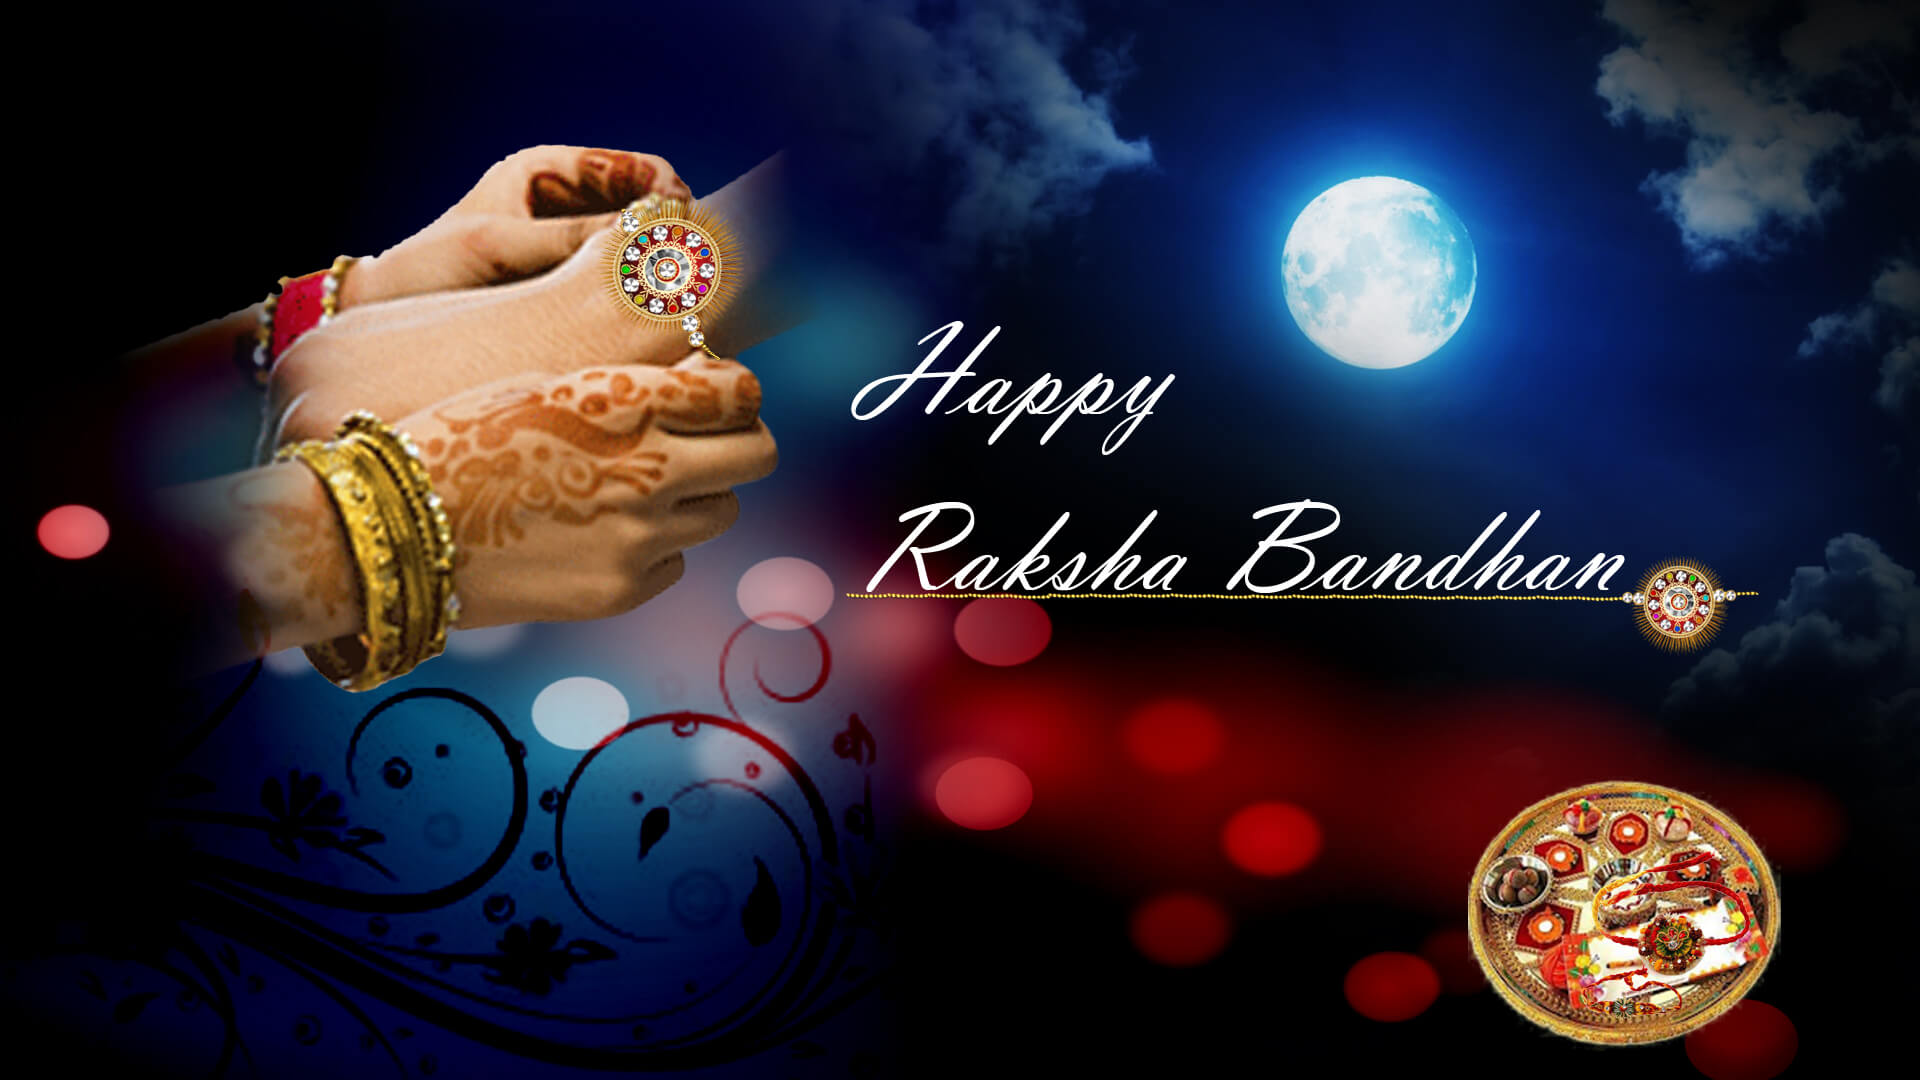 happy Raksha Bandhan images wallpapers brother sister